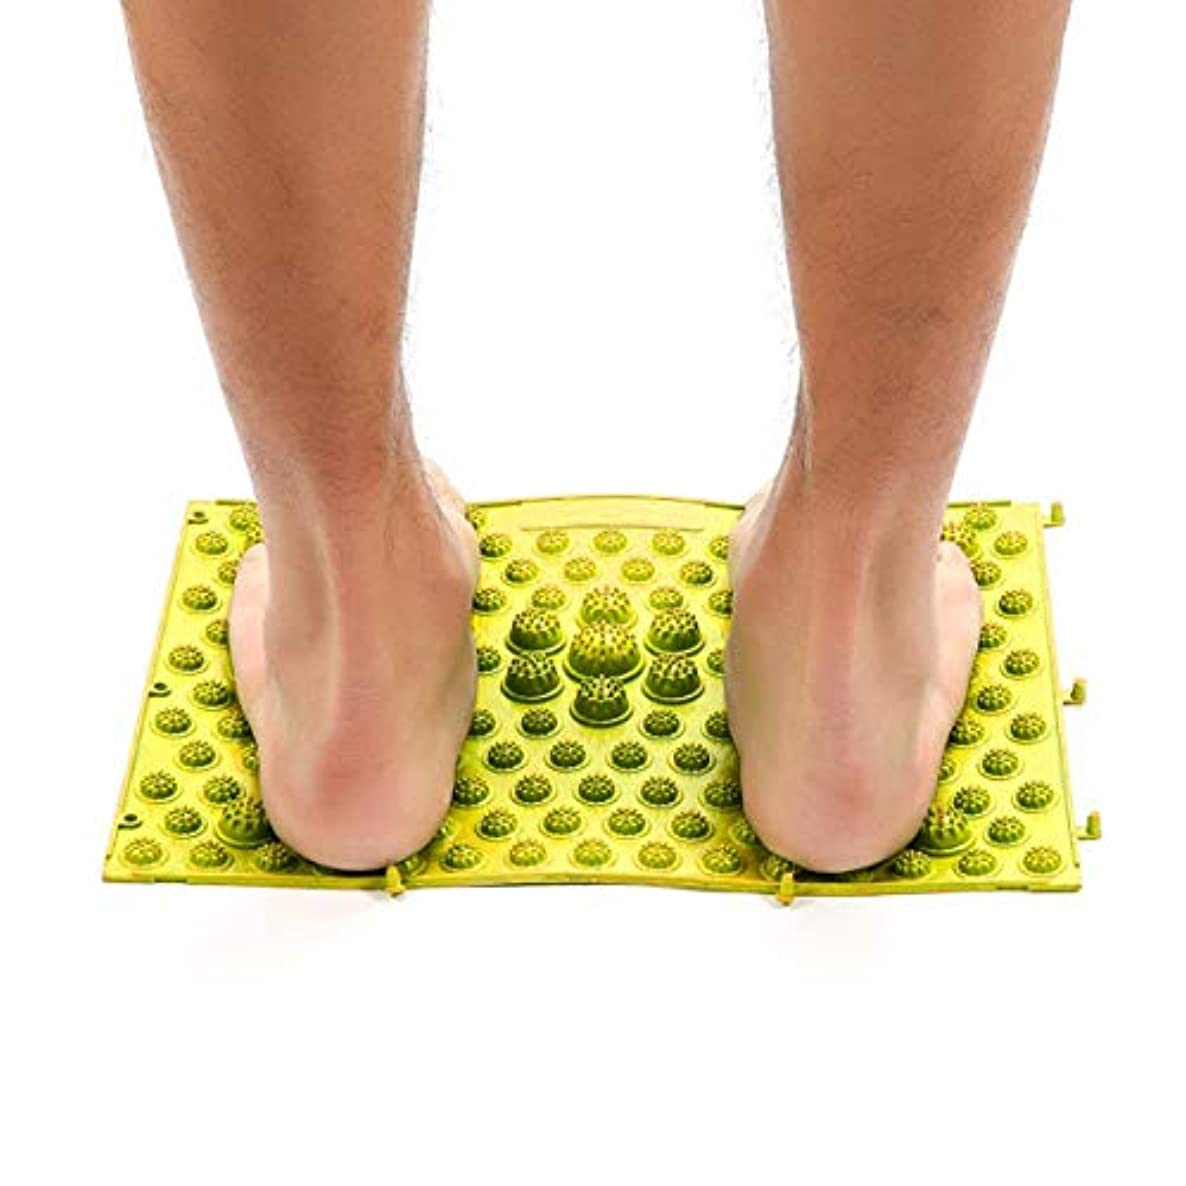 Acupressure Foot Mats Running Man Game Same Type Foot Reflexology Walking Massage Mat for Pain Relief Stress Relief...